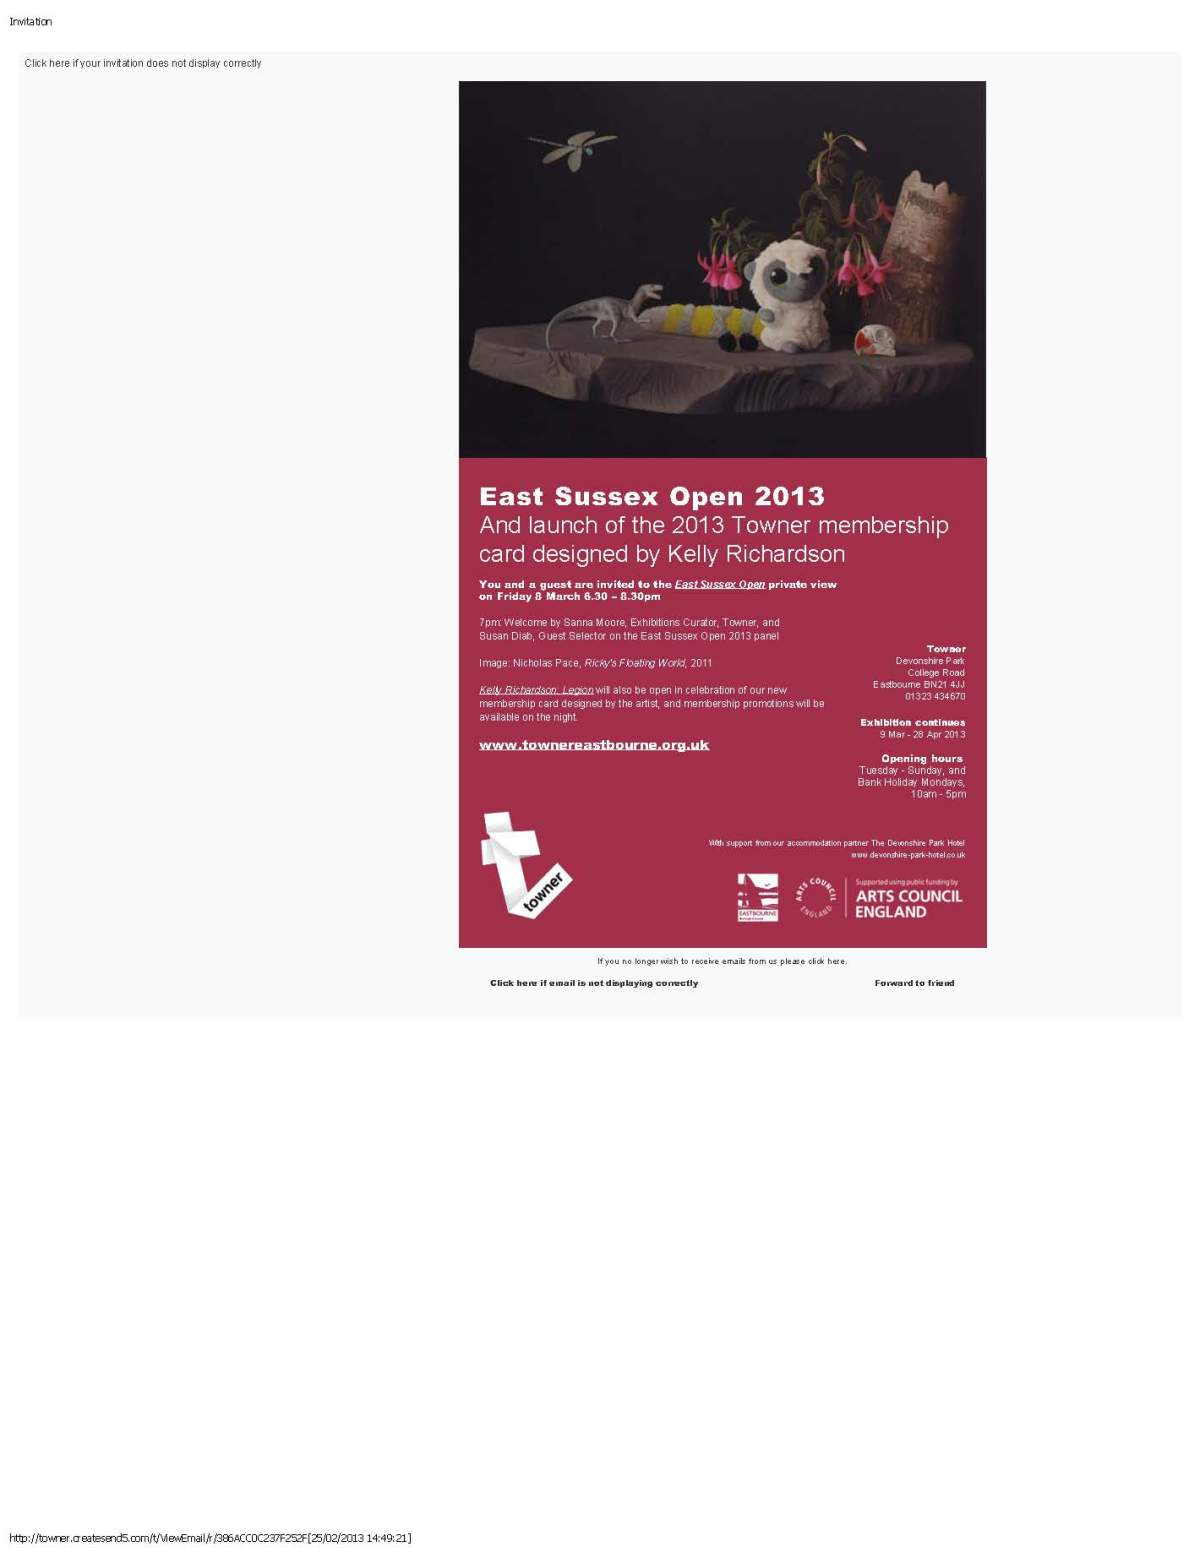 Invitation to private view of East Sussex Open at the TownerGallery